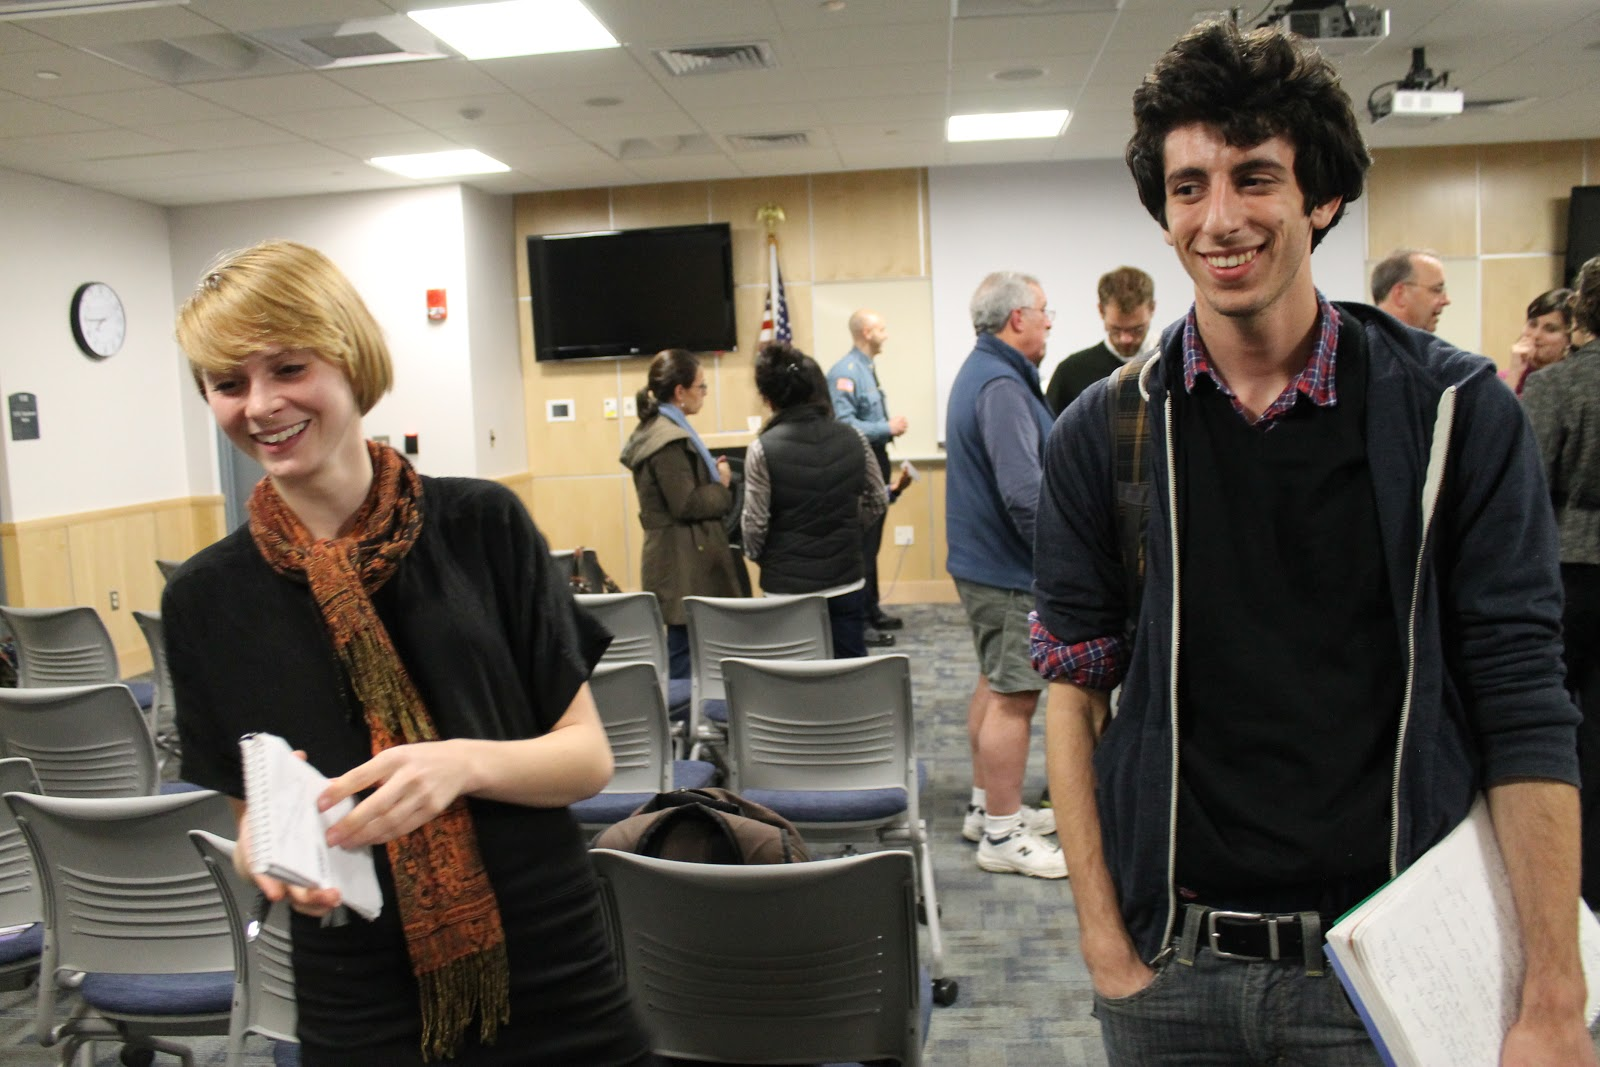 Journ 300 A Umass Journalism Newswriting And Reporting Blog Covering The Oct 16 Umass Police